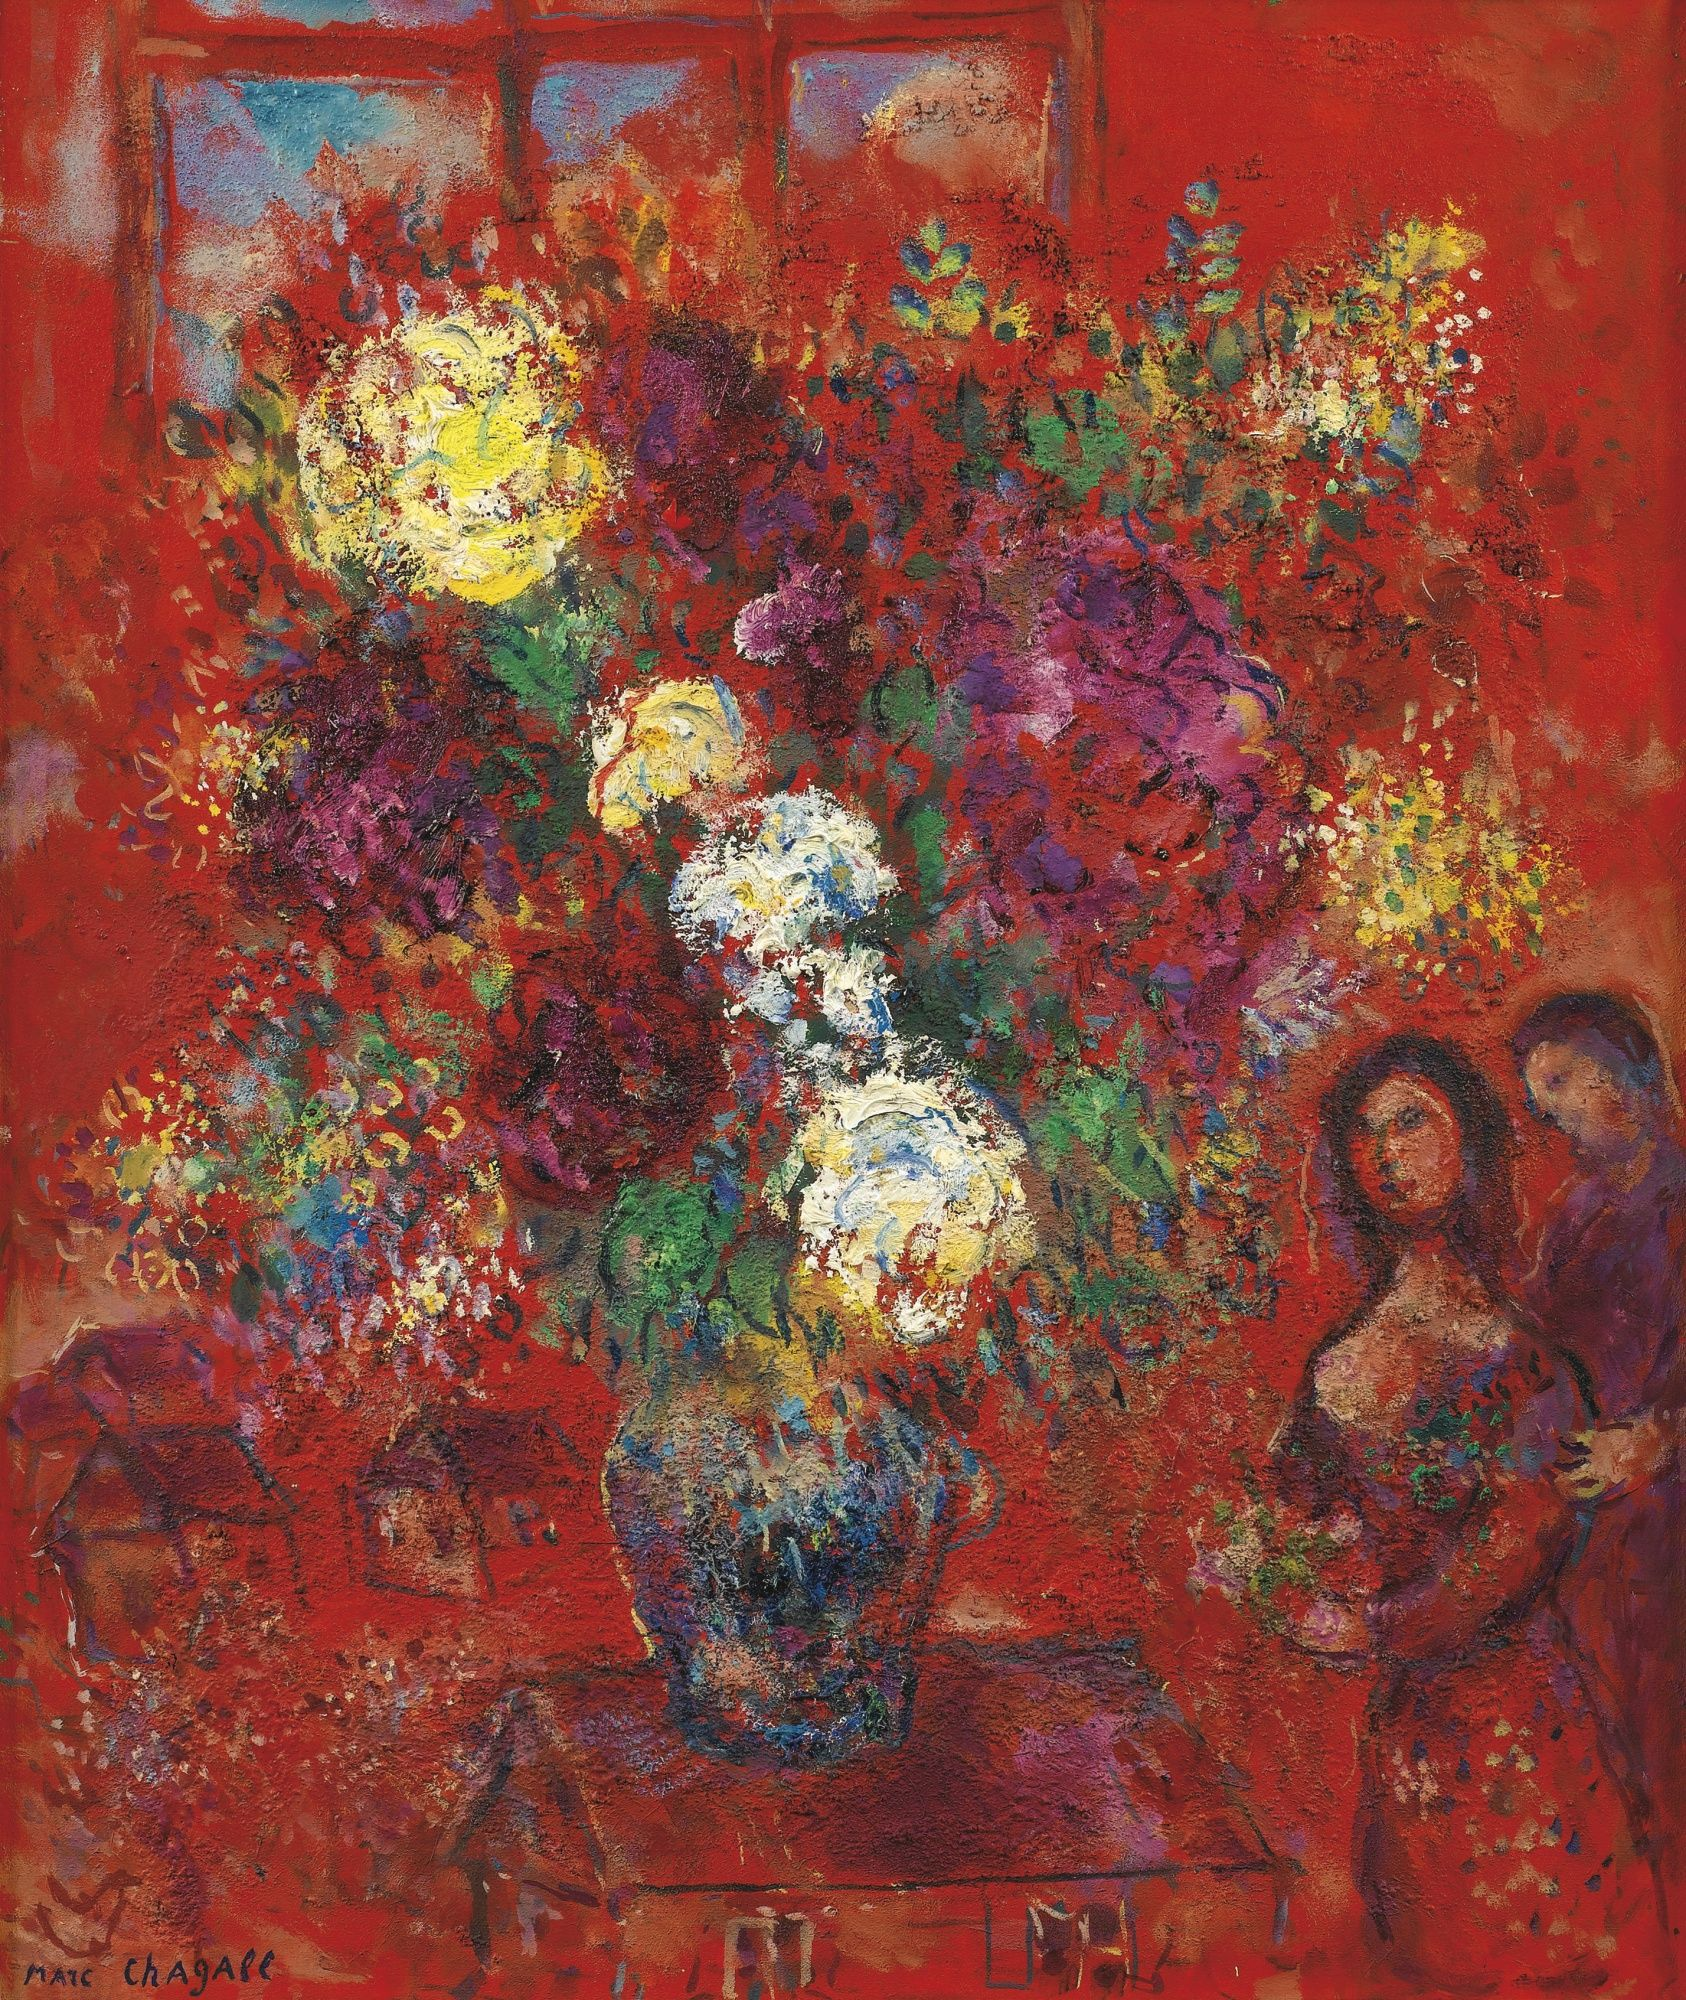 """LE BOUQUET AU FOND ROUGE,"" 1965, Marc Chagall. Oil on canvas; 55 by 46.5cm. 22⅝ by 18¼ in. Sotheby's 2015 sale ₤1,205,000."